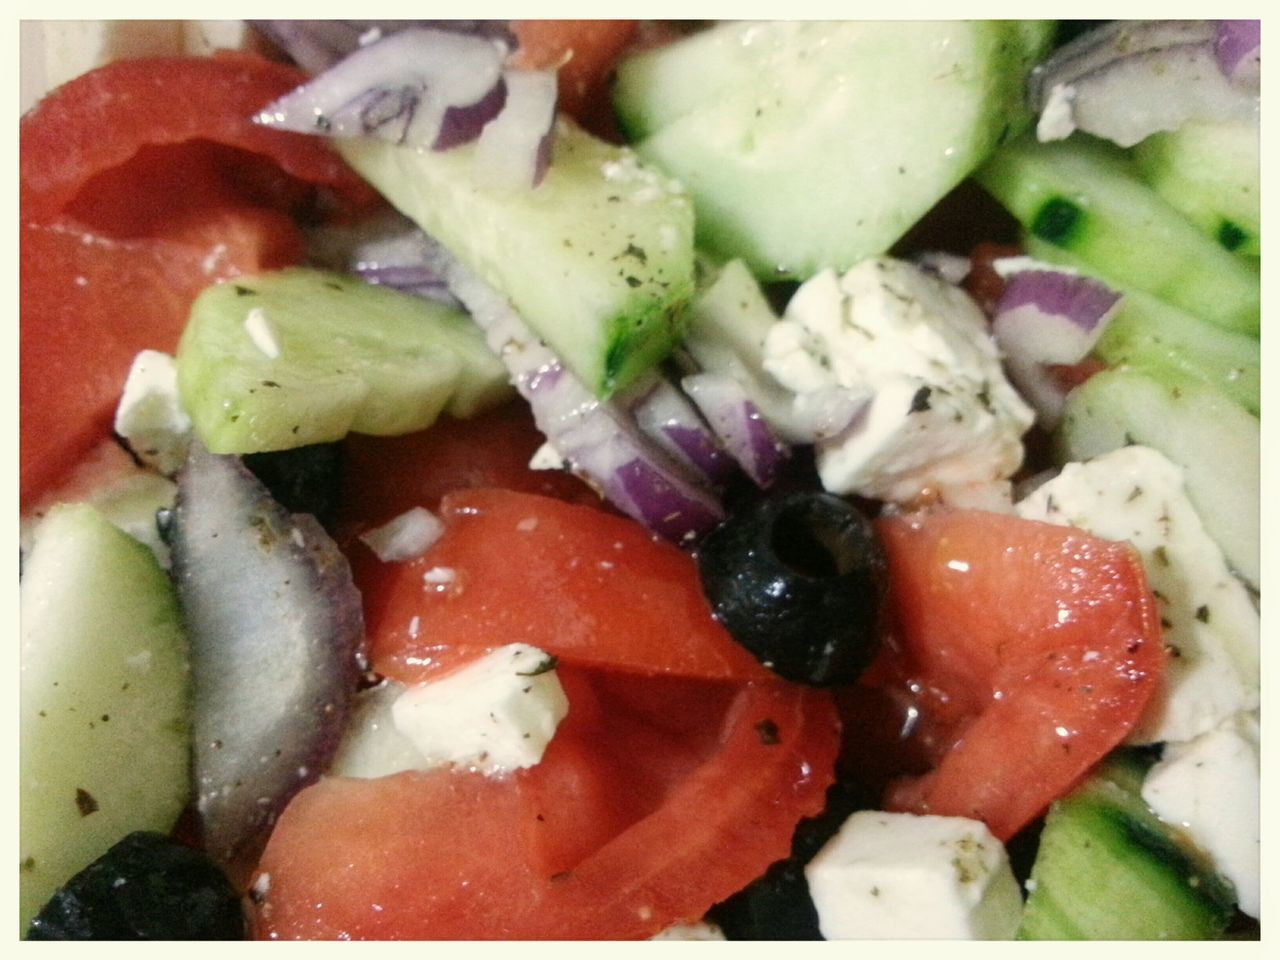 Insalata Greca/ Greek Saladd Cucumber Cetriolo Pomodori Tomaten Feta Cheese Olive Food And Drink Healthy Eating Vegetable Freshness No People Close-up Ready-to-eat Food Smartphone Photography Note 2